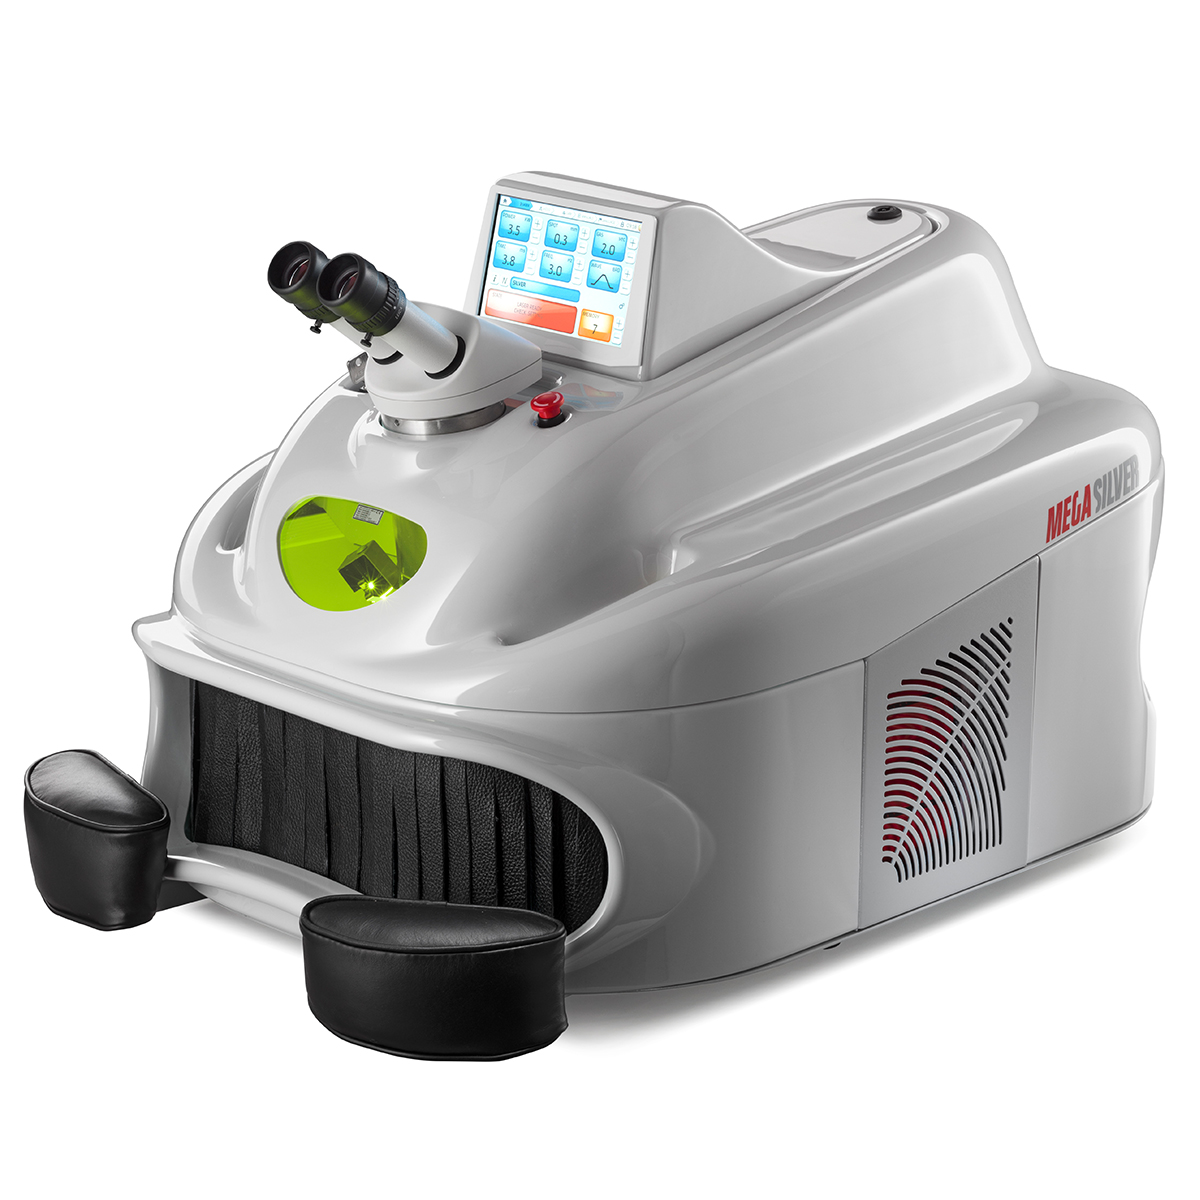 Elettrolaser Mega Silver Dental and Jewelry Laser Welder